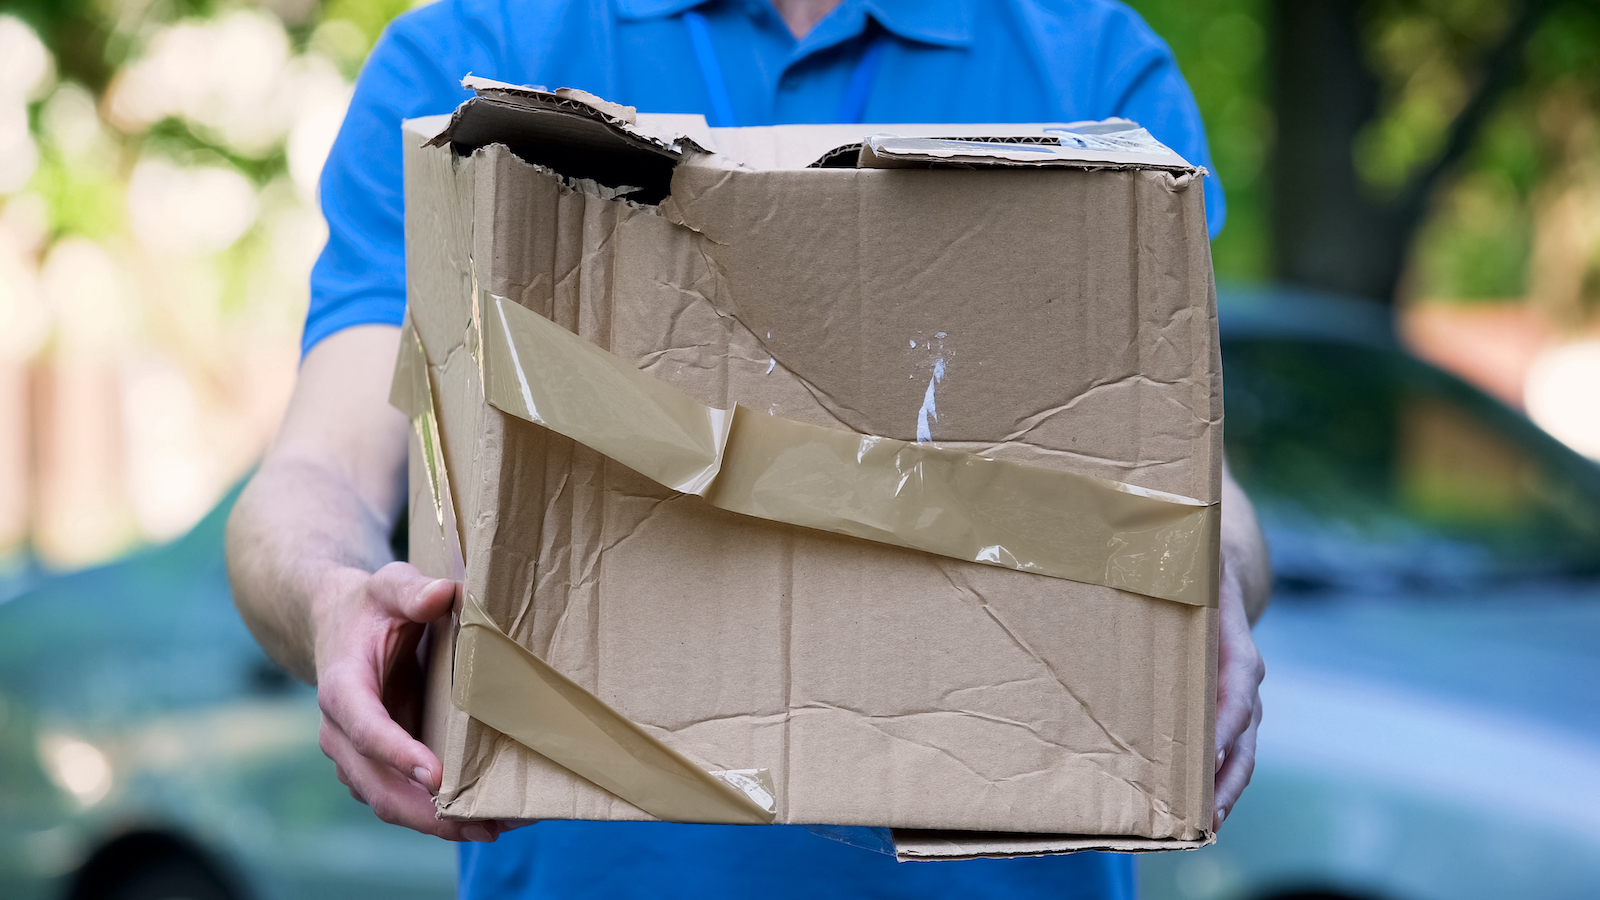 Protect your shipments